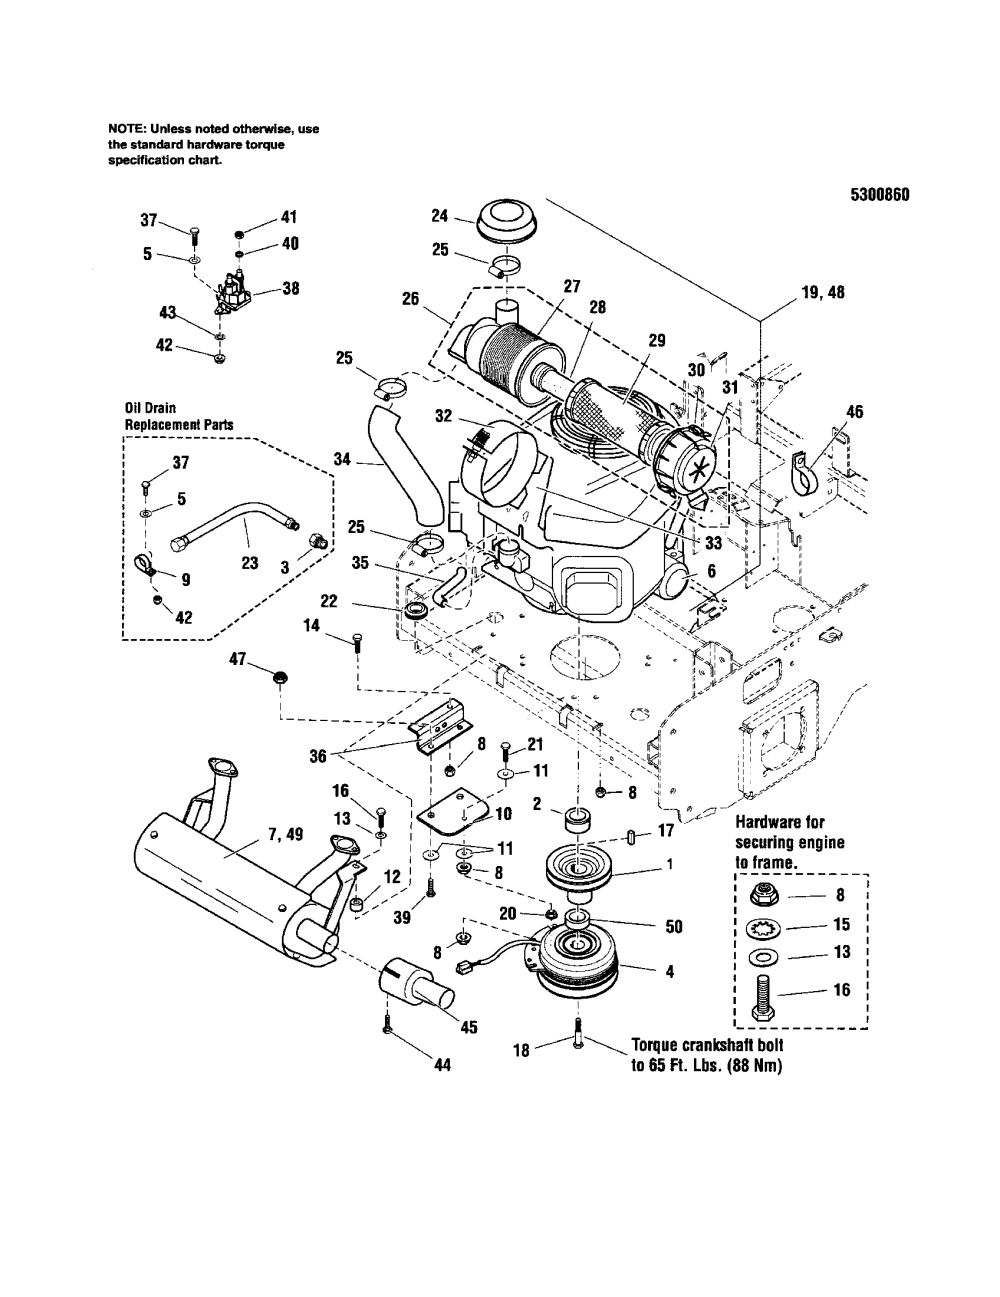 medium resolution of  kohler motor parts diagram snapper zero turn riding mower engine pto 25 hp 27hp kawasaki parts